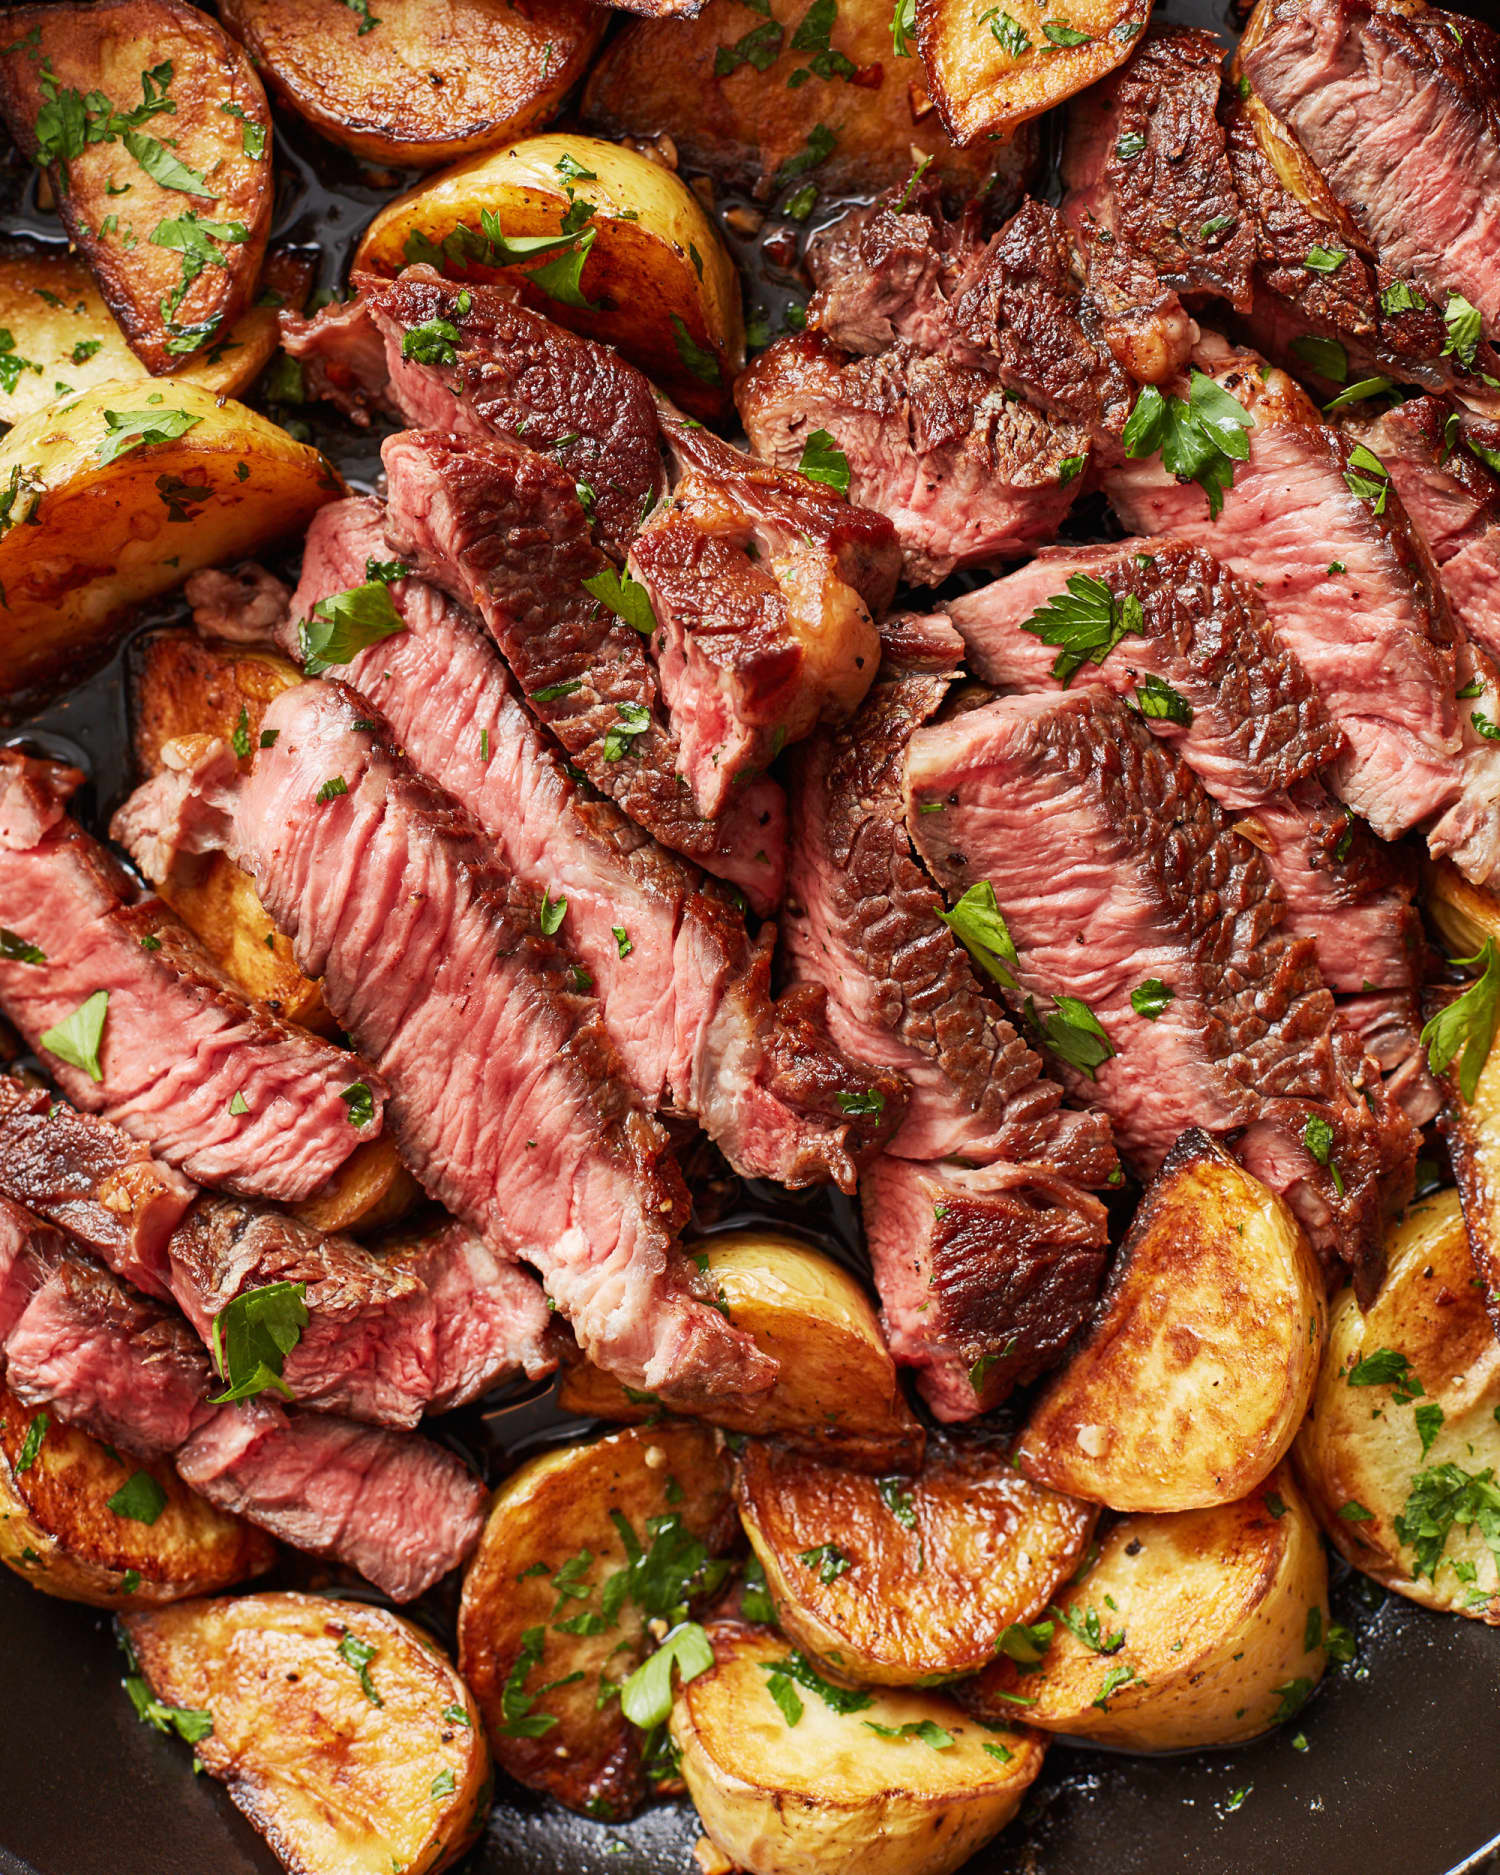 Recipe: Garlic Butter Steak and Potatoes